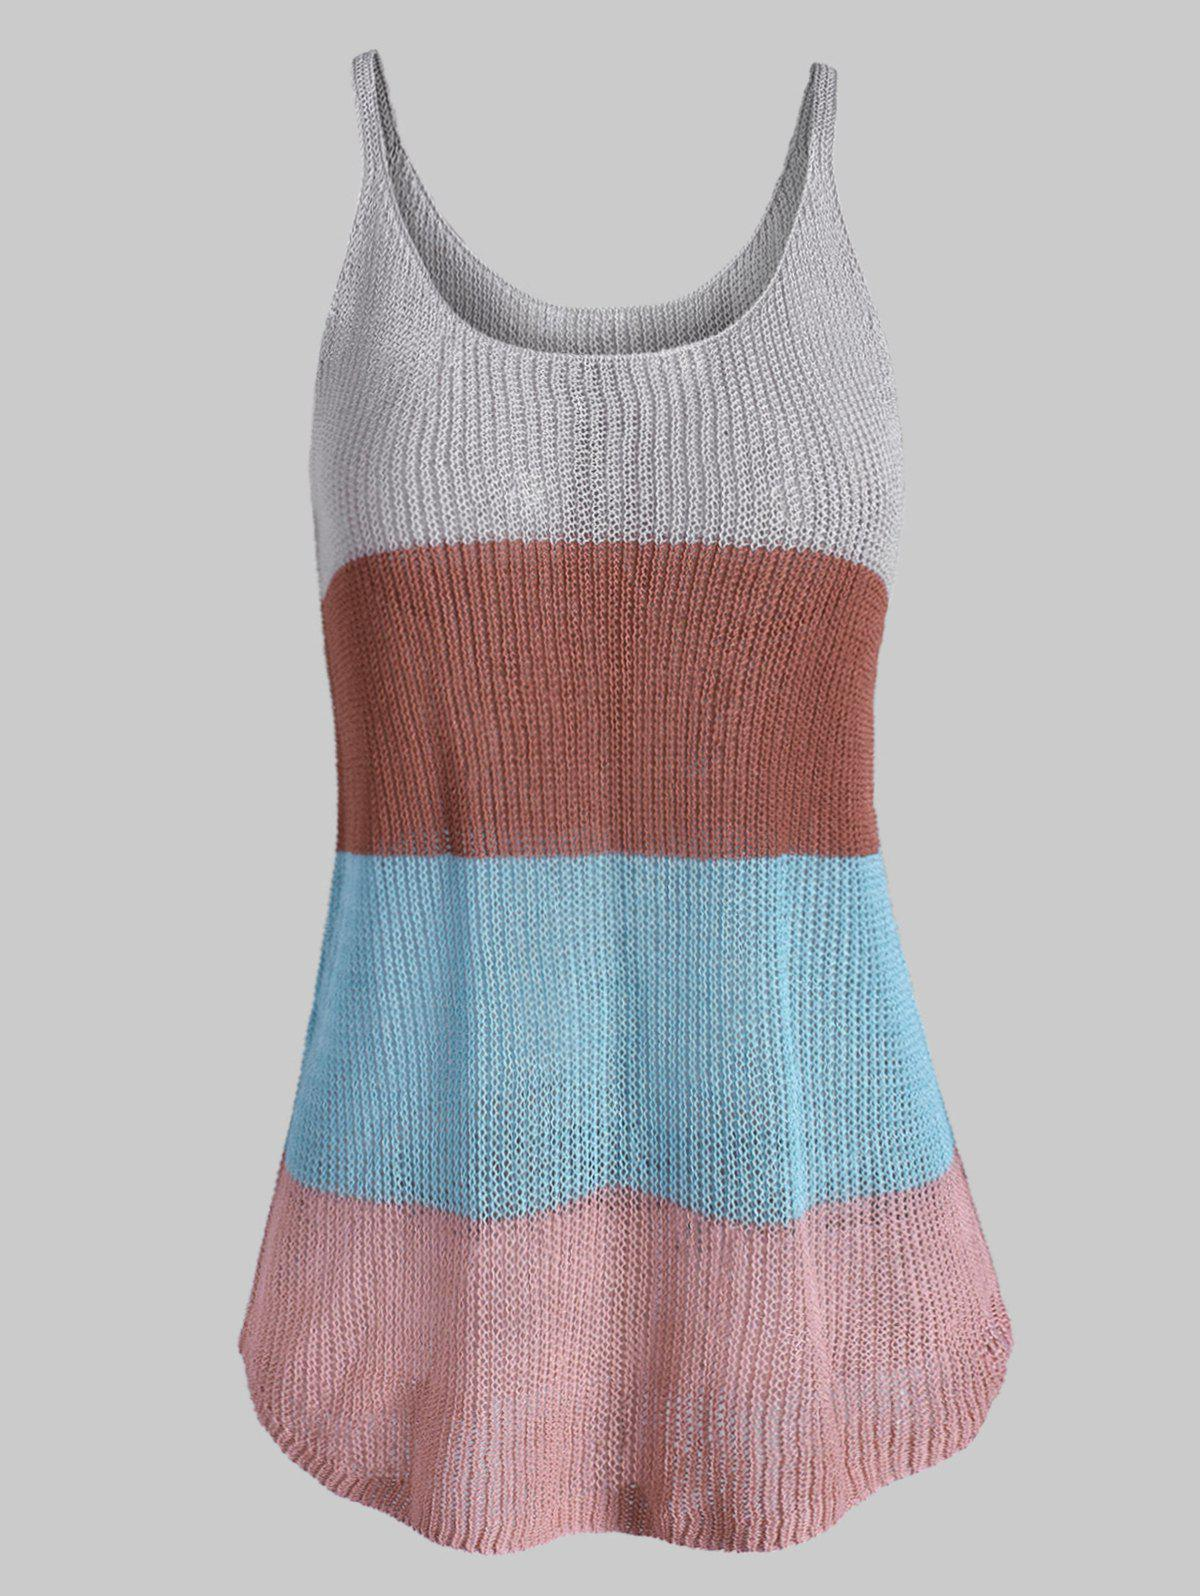 Colorblock Stripes Knitted Plus Size Tank Top - multicolor L